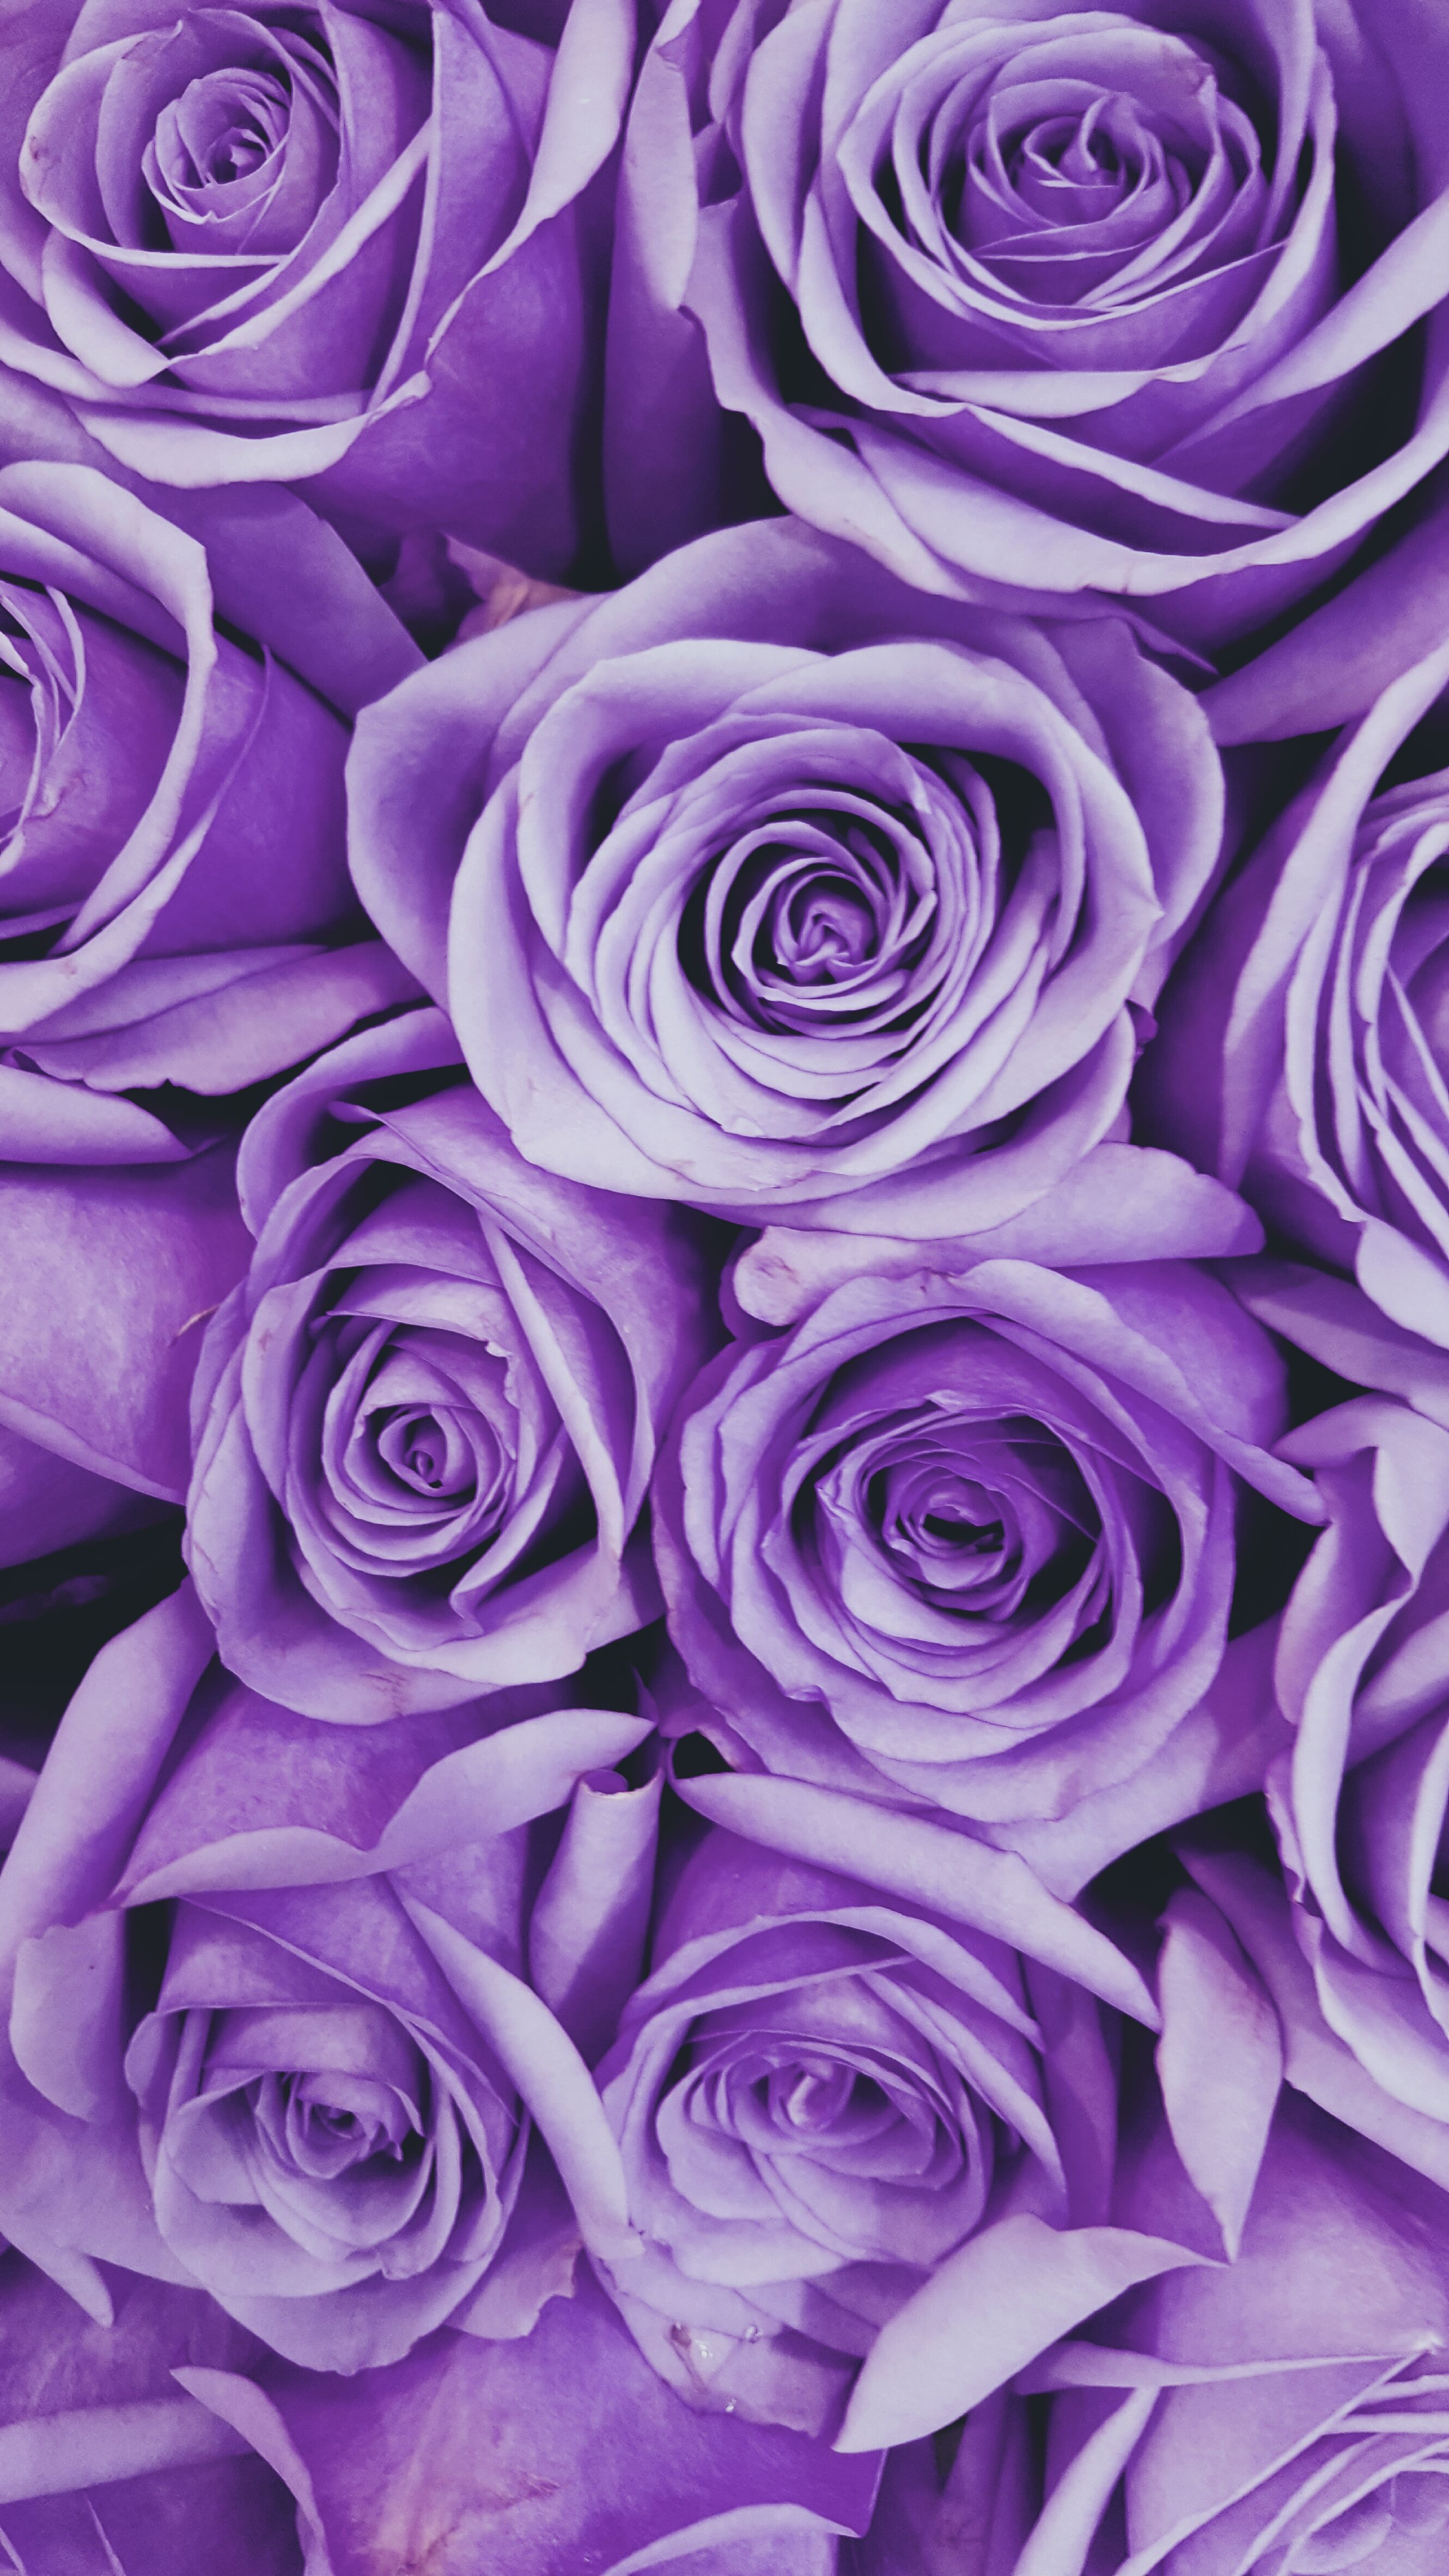 Our selection of grey wallpaper comes in a number of styles, including faux materials such as brick, stone and slate, as well as floral, striped and plain,. #purpleflowers #floralart #textileart #textiledesign #